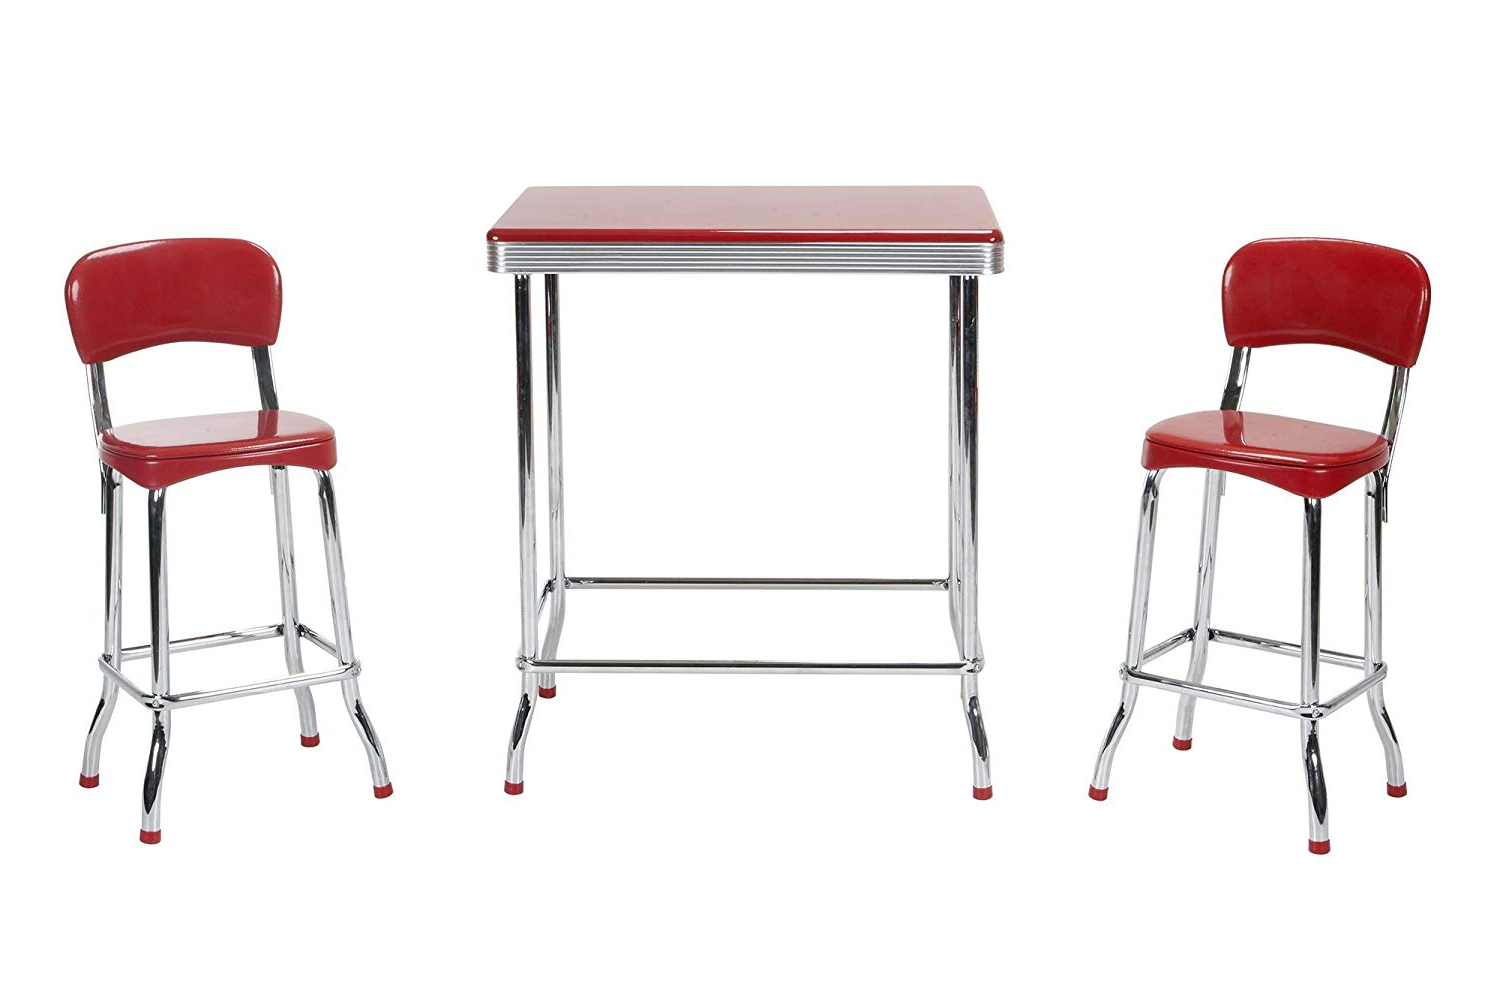 Cosco 14223red1e Stylaire 3 Piece High Top Set, Red & Chrome For 2018 Bate Red Retro 3 Piece Dining Sets (View 2 of 20)